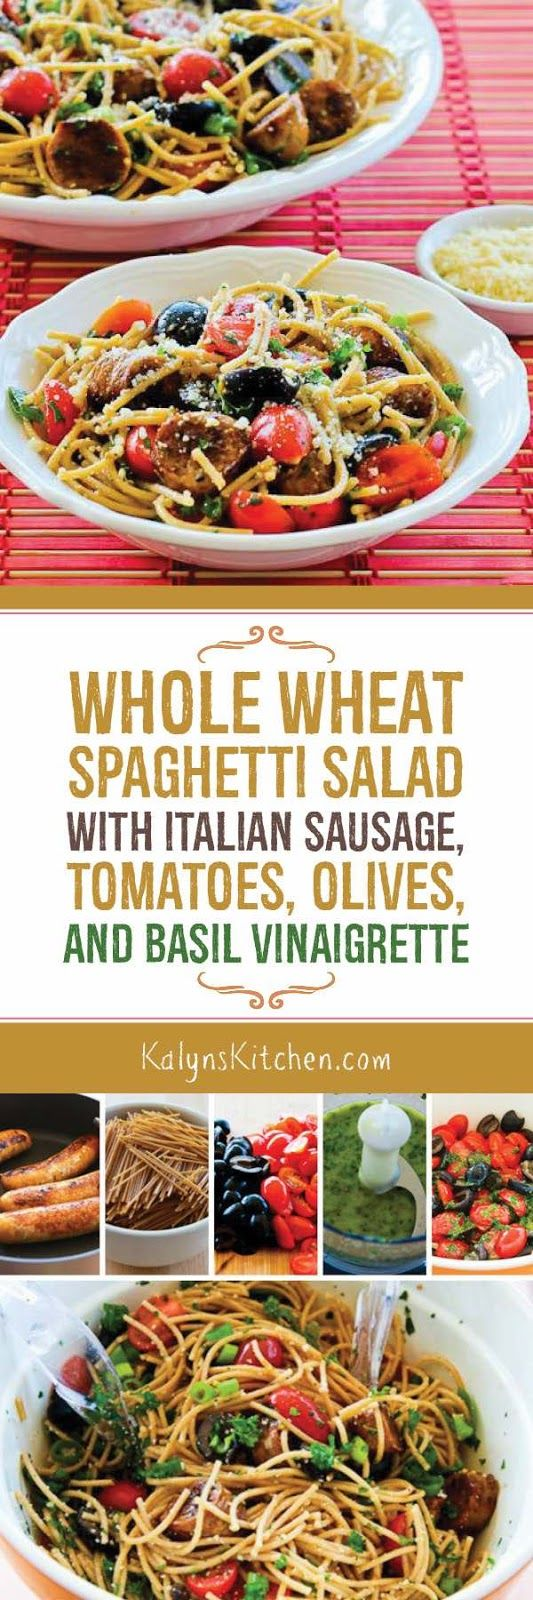 I don't eat a lot of pasta, but I'd make this Whole Wheat Spaghetti Salad with Italian Sausage, Tomatoes, Olives, and Basil Vinaigrette as a splurge for a special occasion. [from KalynsKitchen.com]